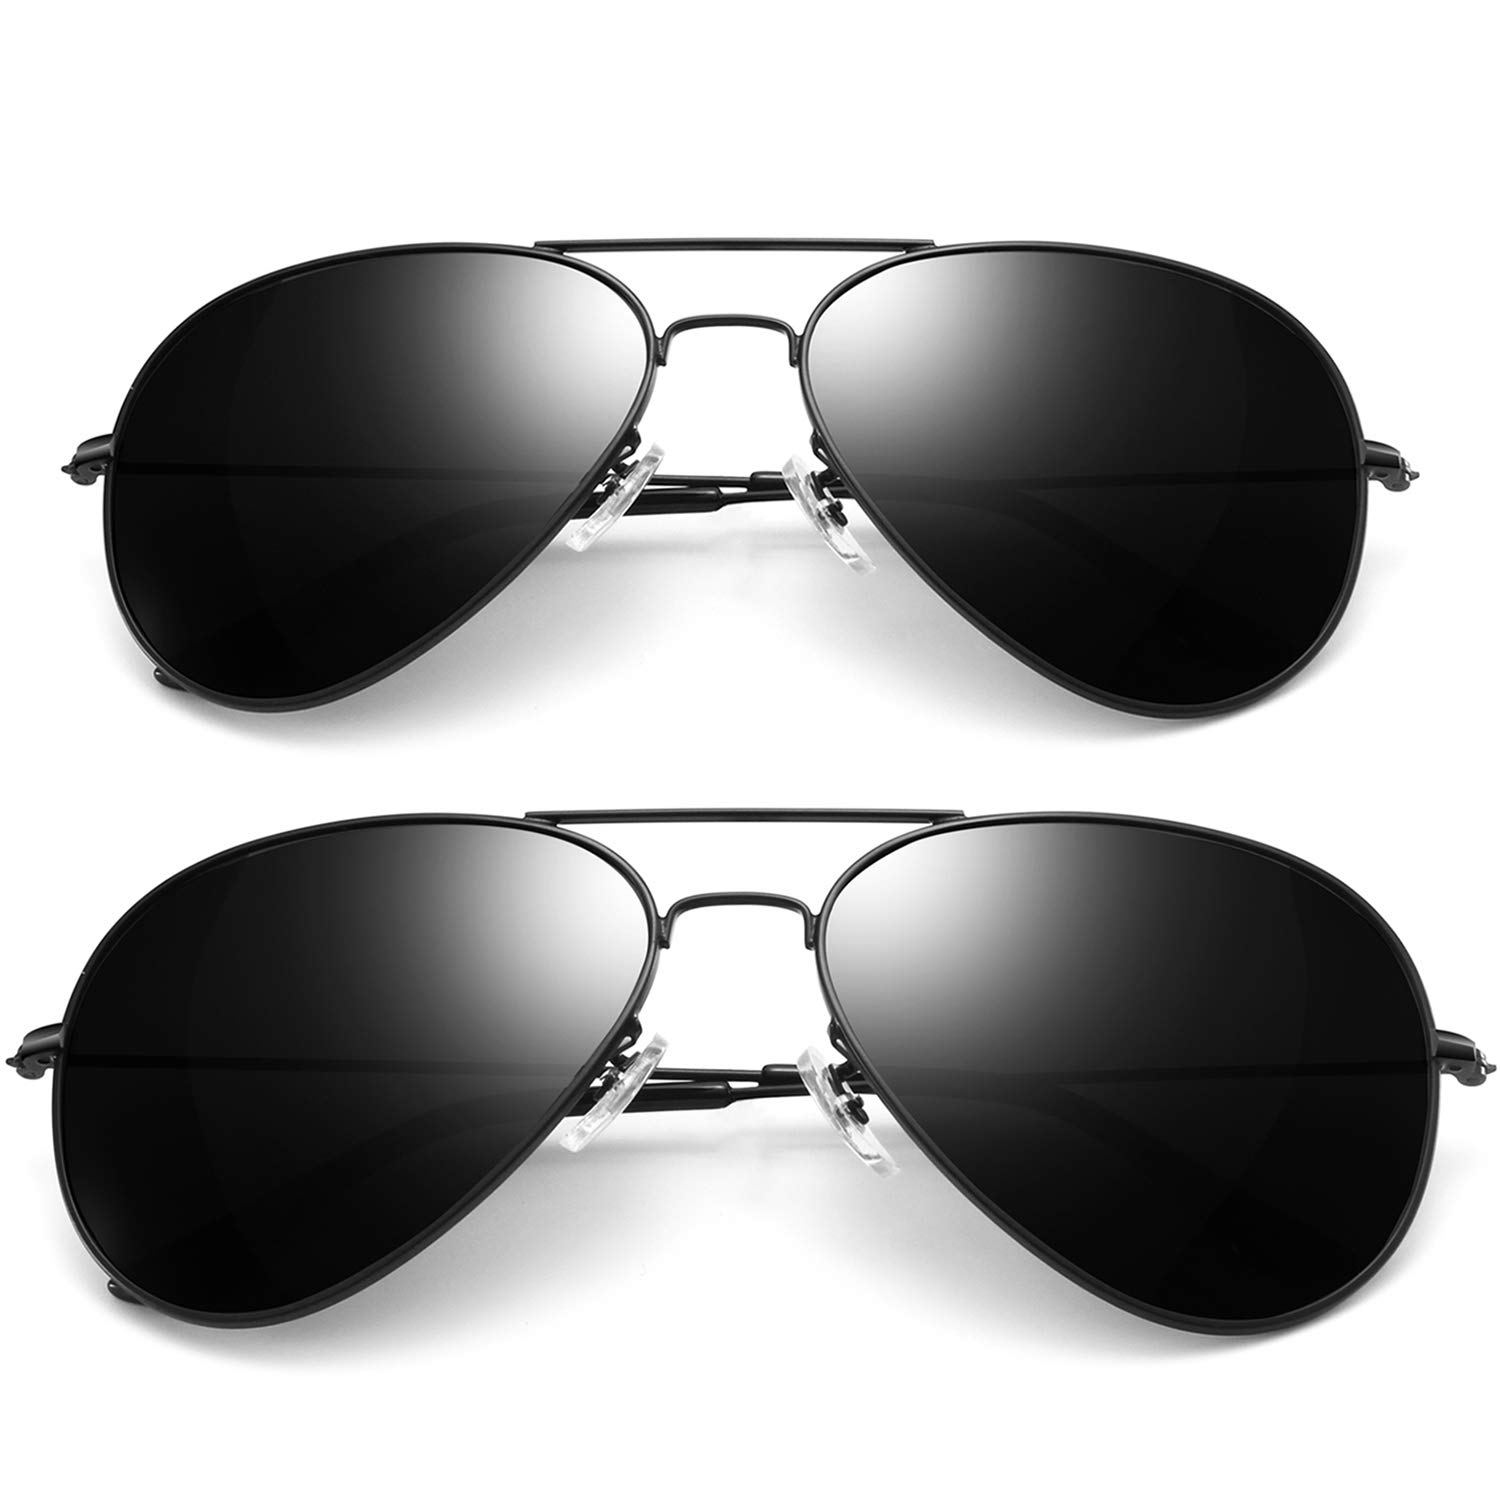 Joopin Aviator Sunglasses for Men Women, 2 Pack Military Style Sunglasses Polarized (Black+Black) by Joopin